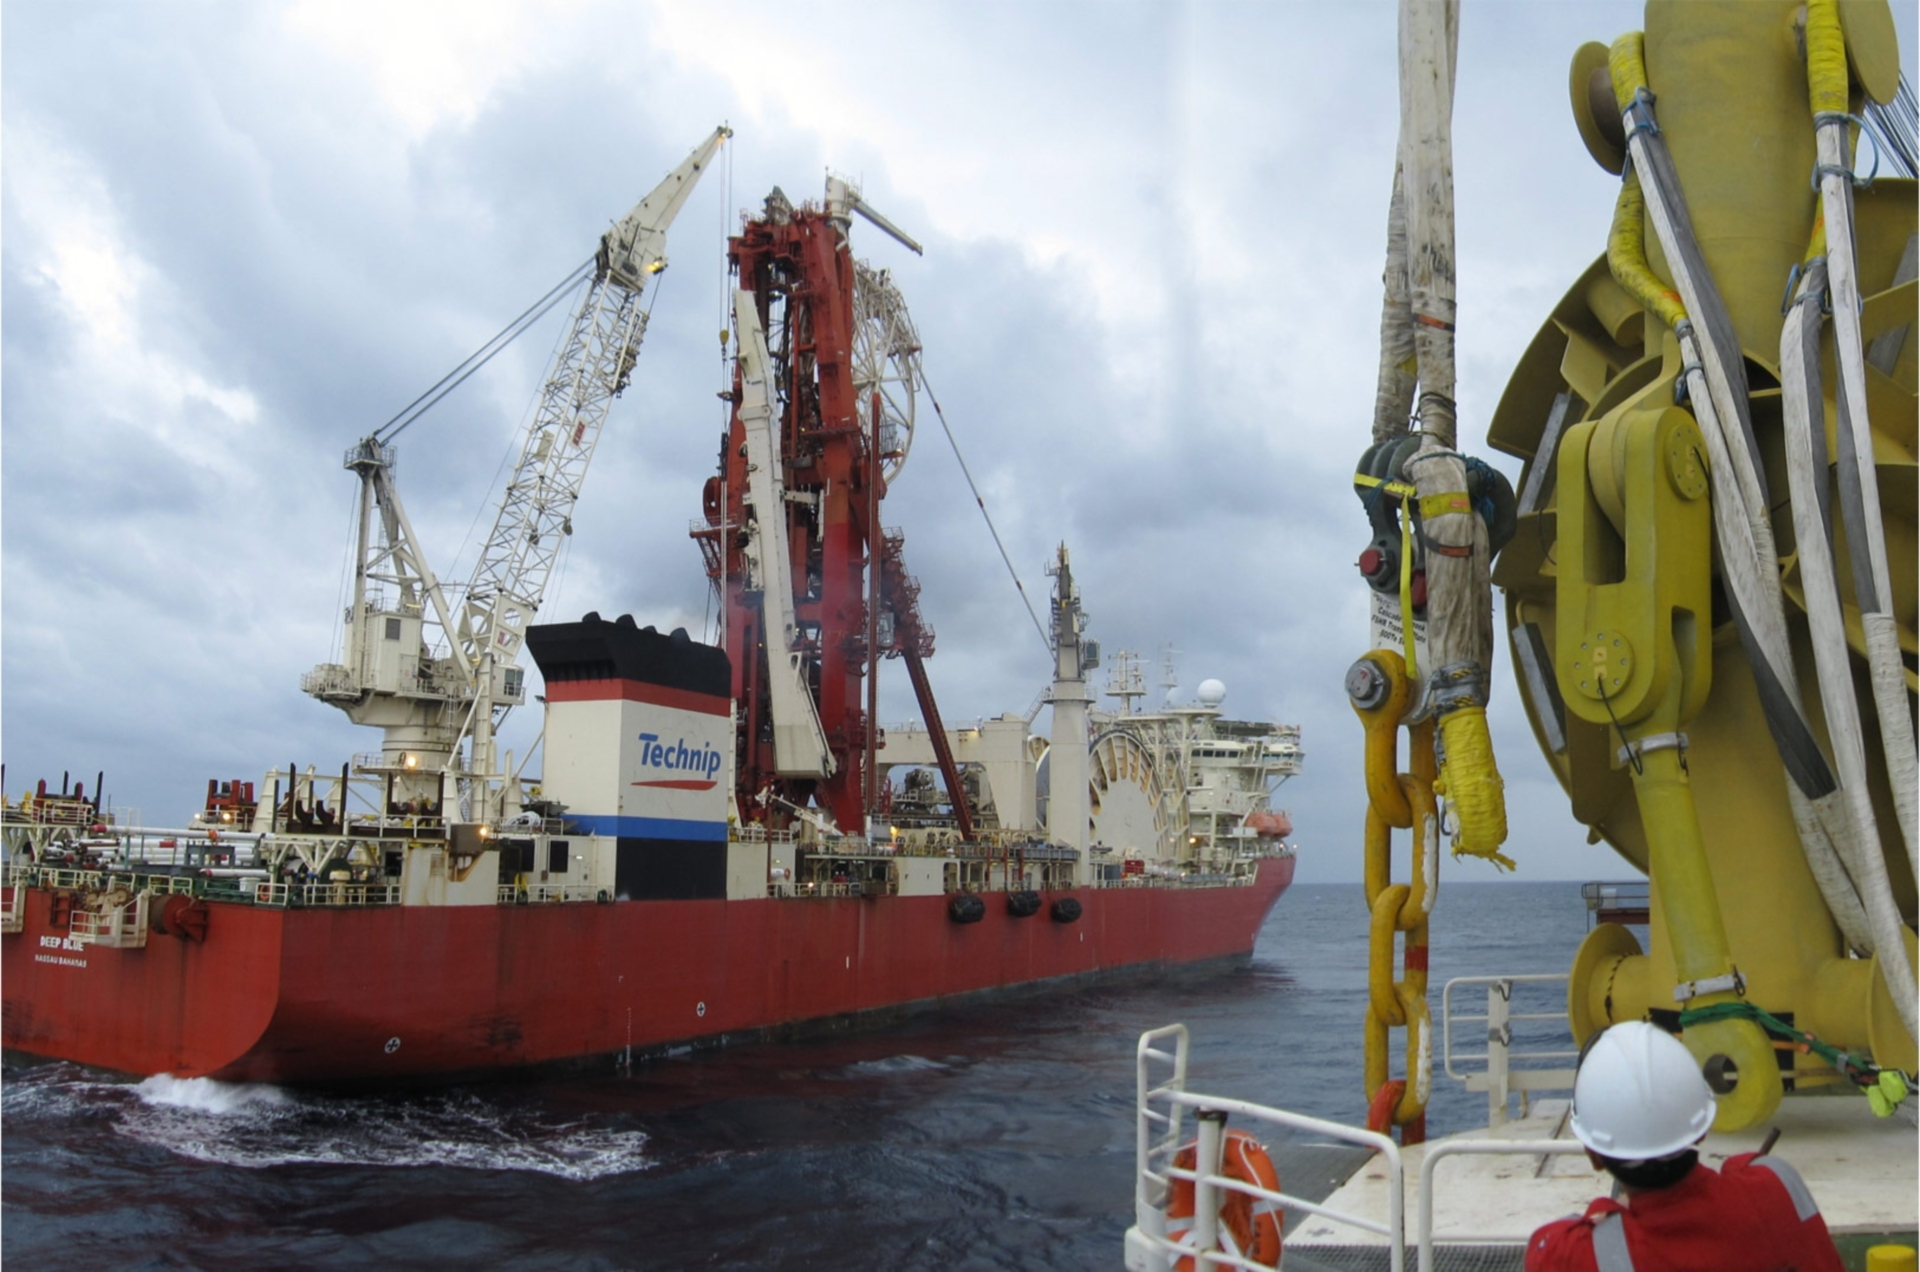 Technip offshore operations